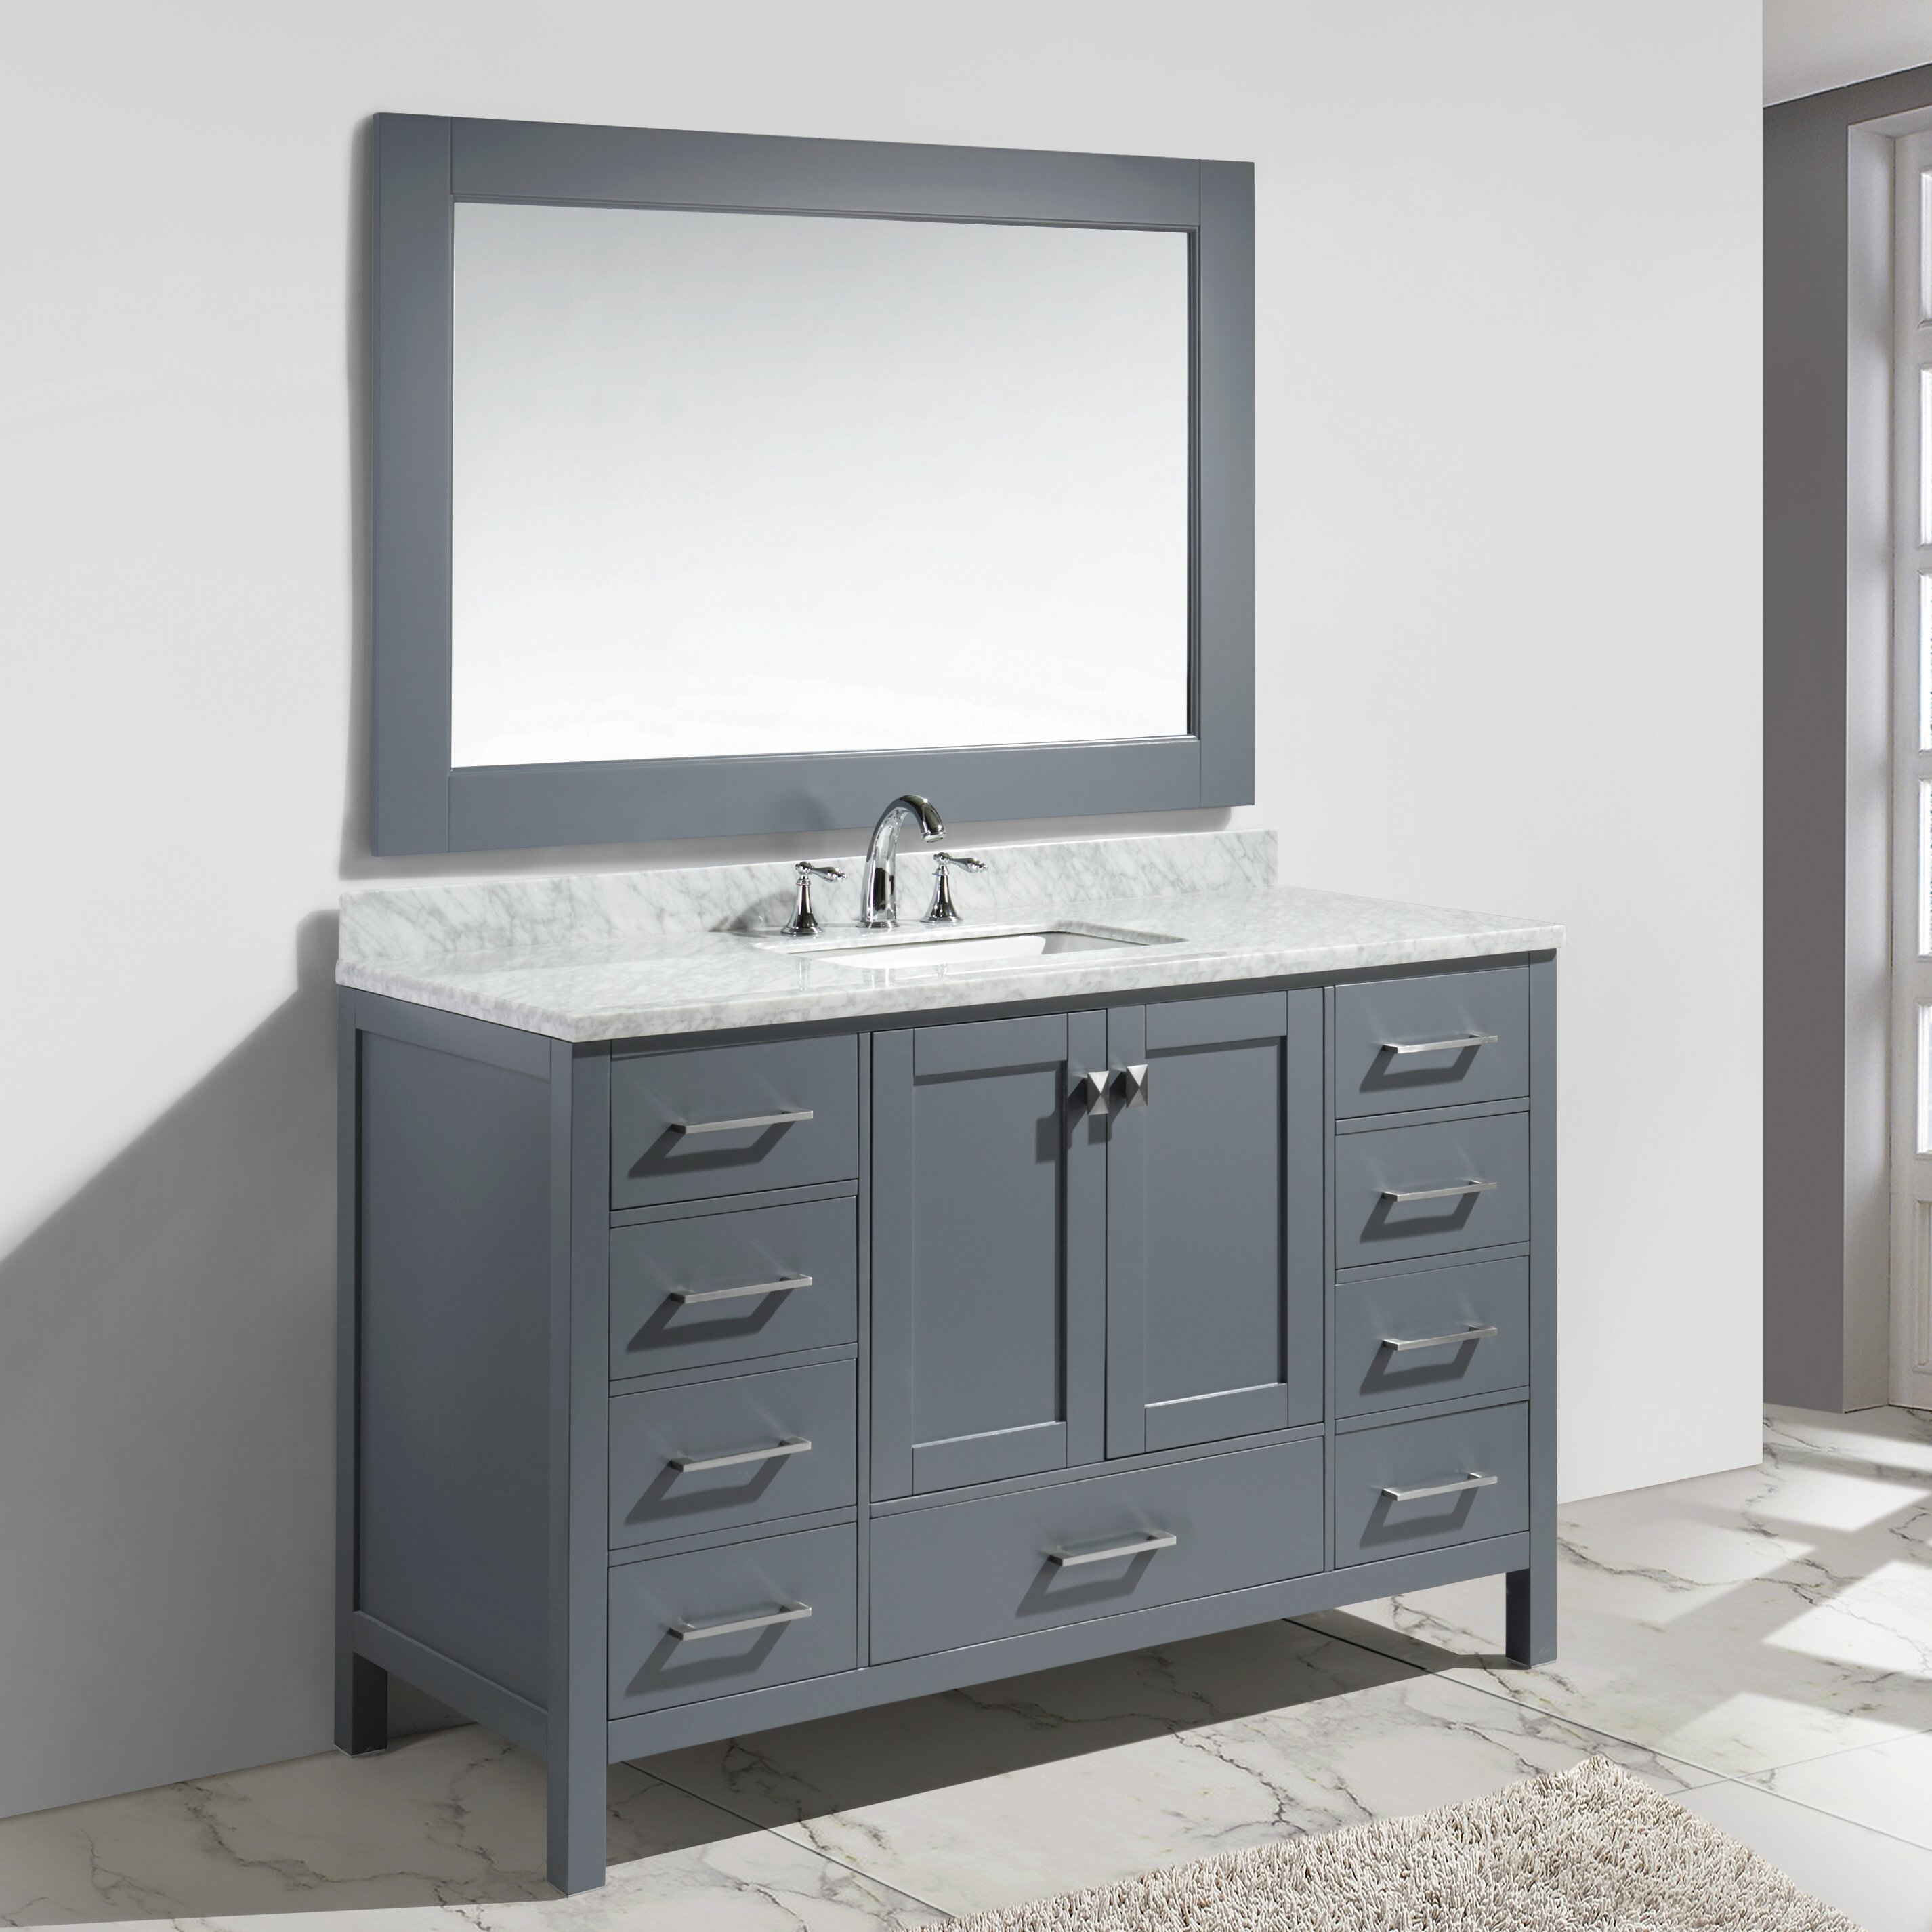 sink i vanityh bathroom double camden inch adelina vanityi dsc antique vanity white top